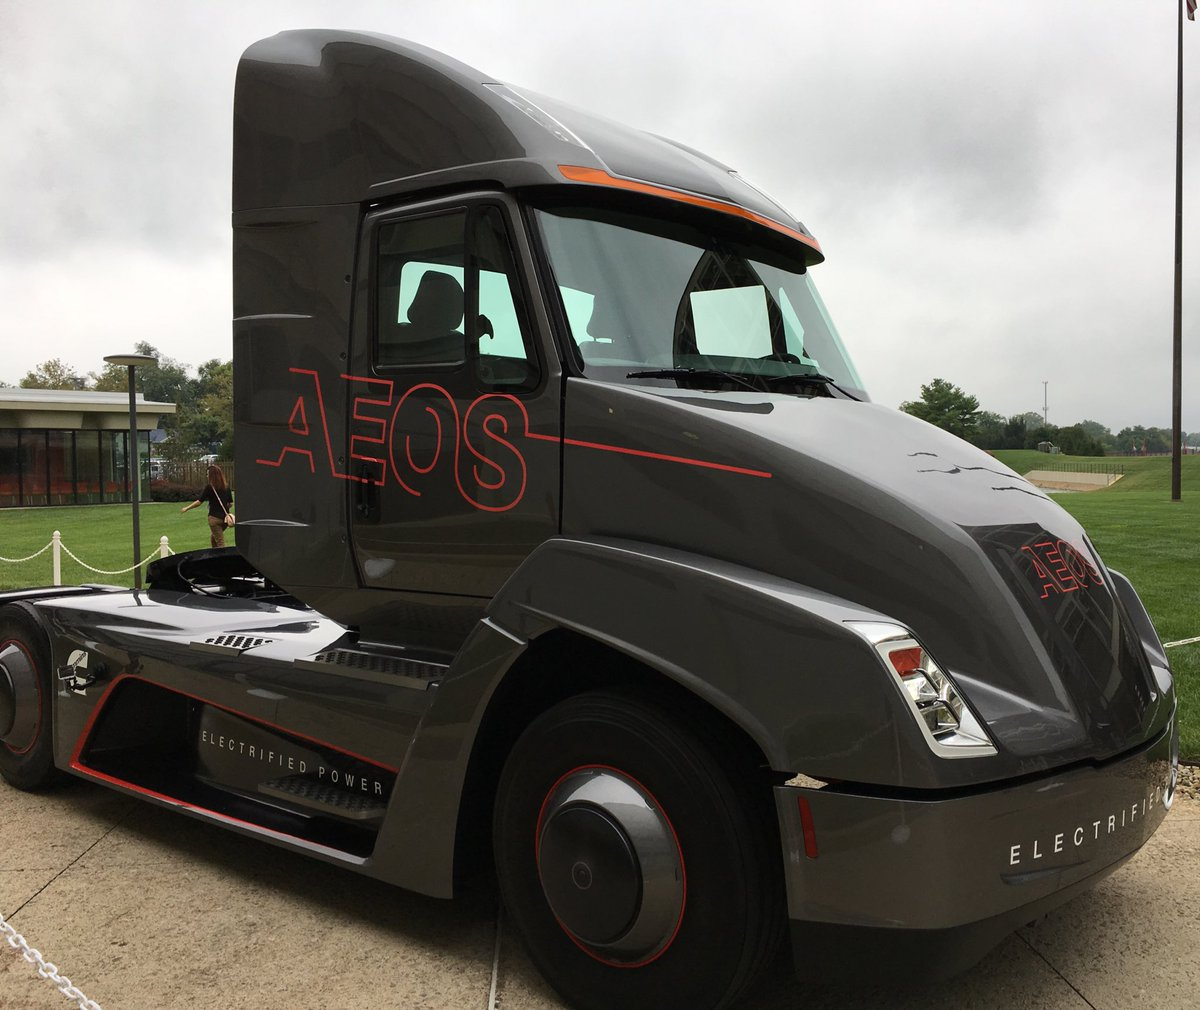 Electrek Co On Twitter Sel Engine Manufacturer Mins Goes Electric With New Truck Ahead Of Tesla Semi Unveil Https T 64yxkpkgzx